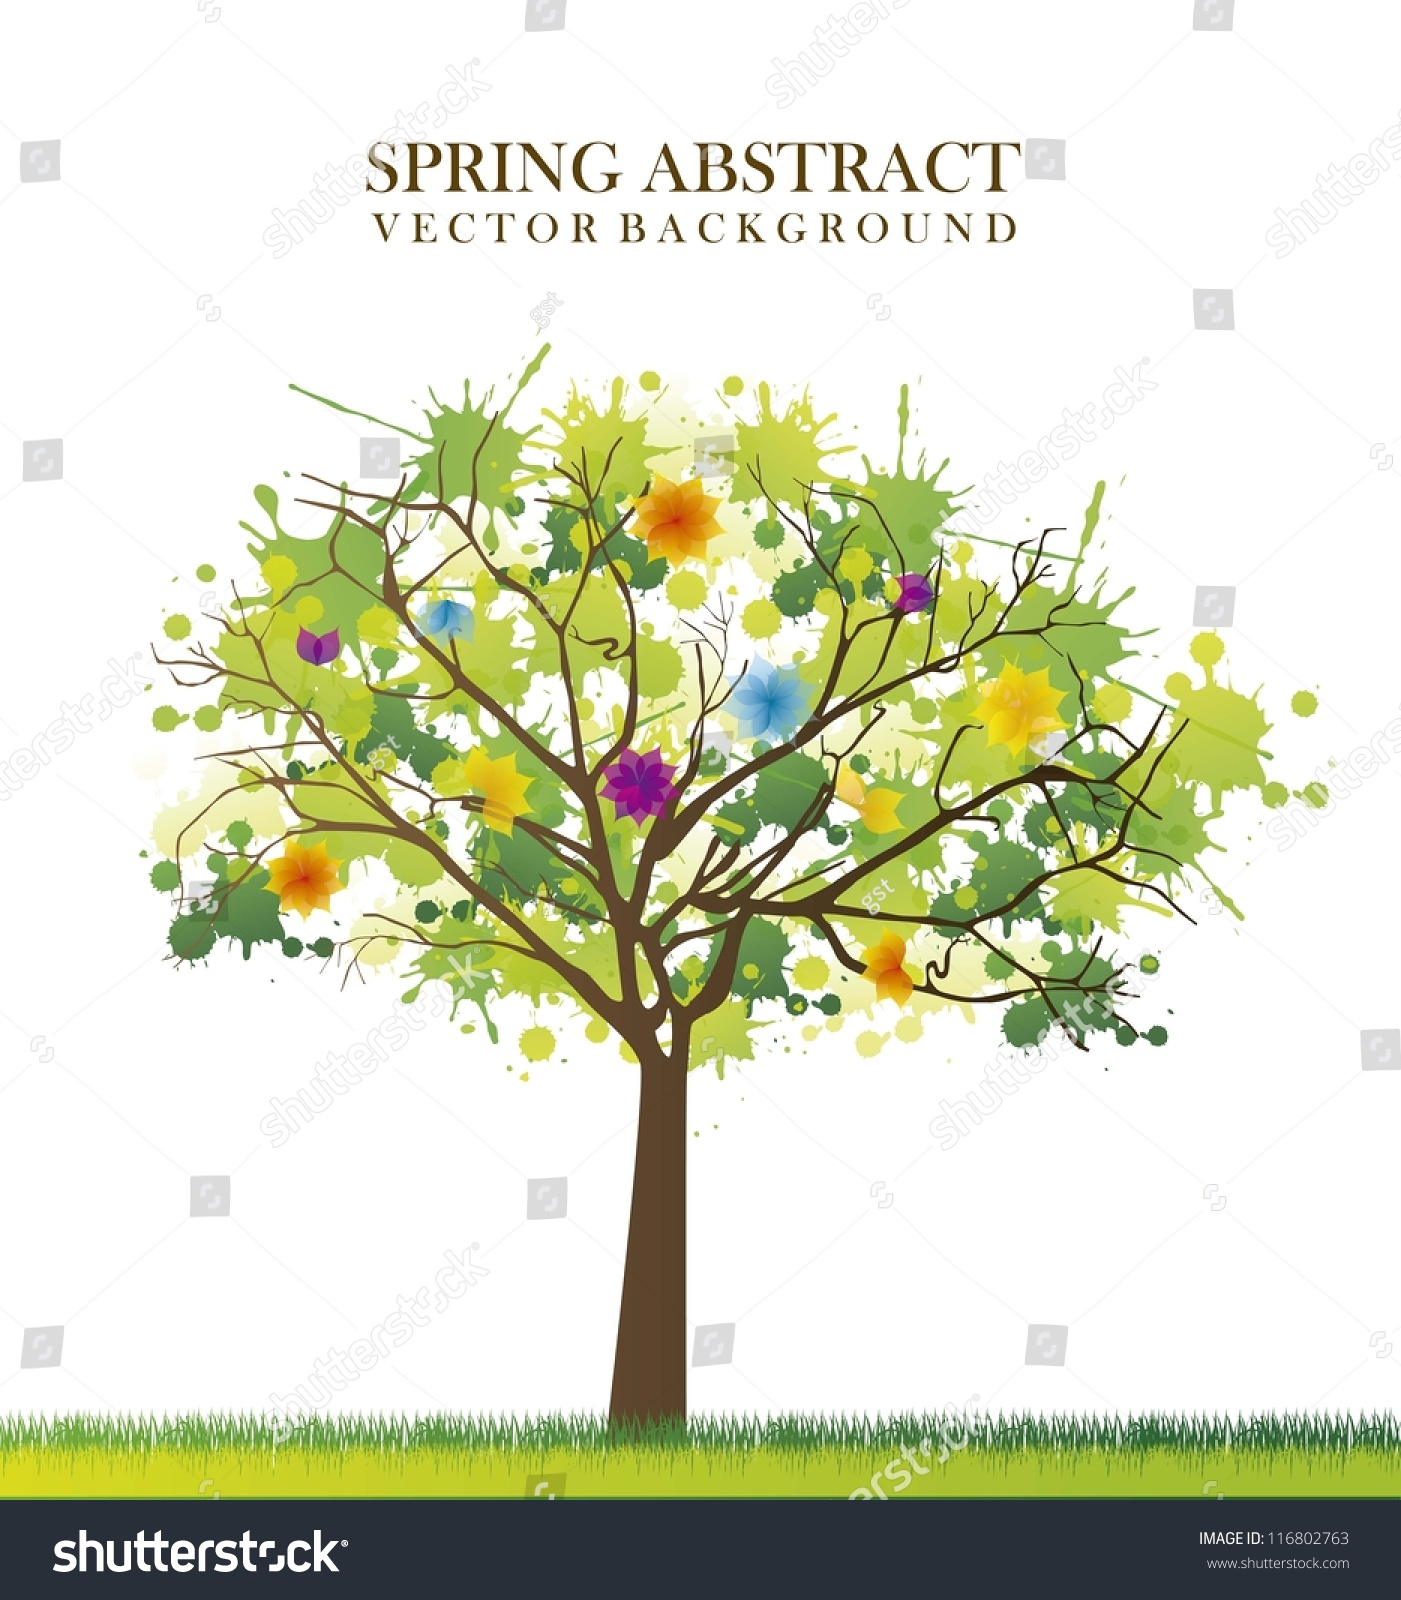 Stock Vector Spring Tree Abstract Over White Background Vector Illustr...